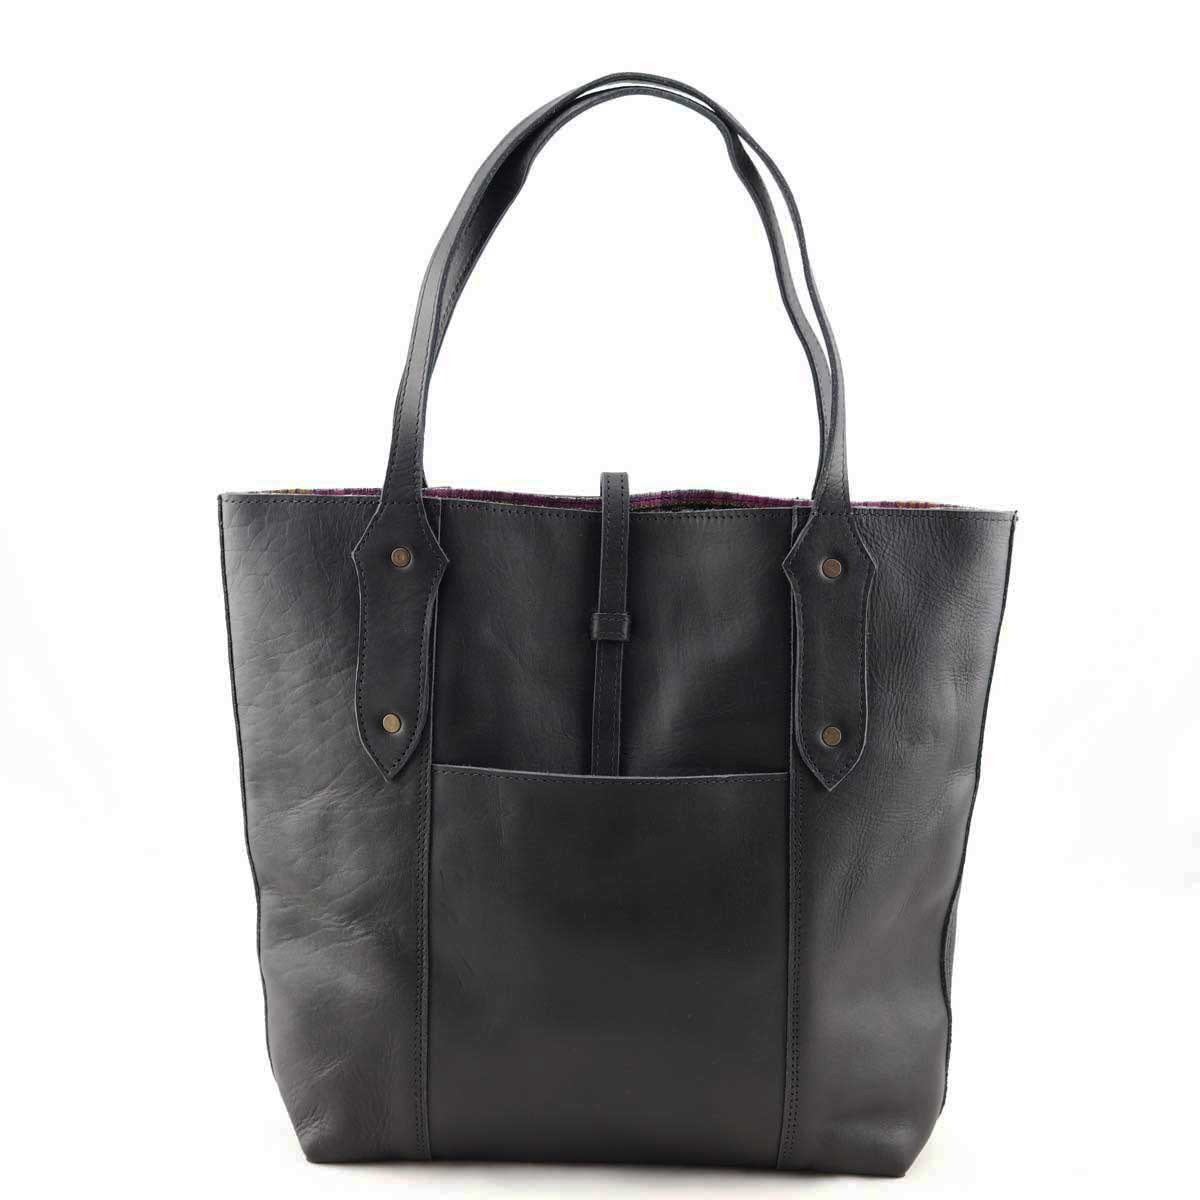 Antigua Mini Leather Tote